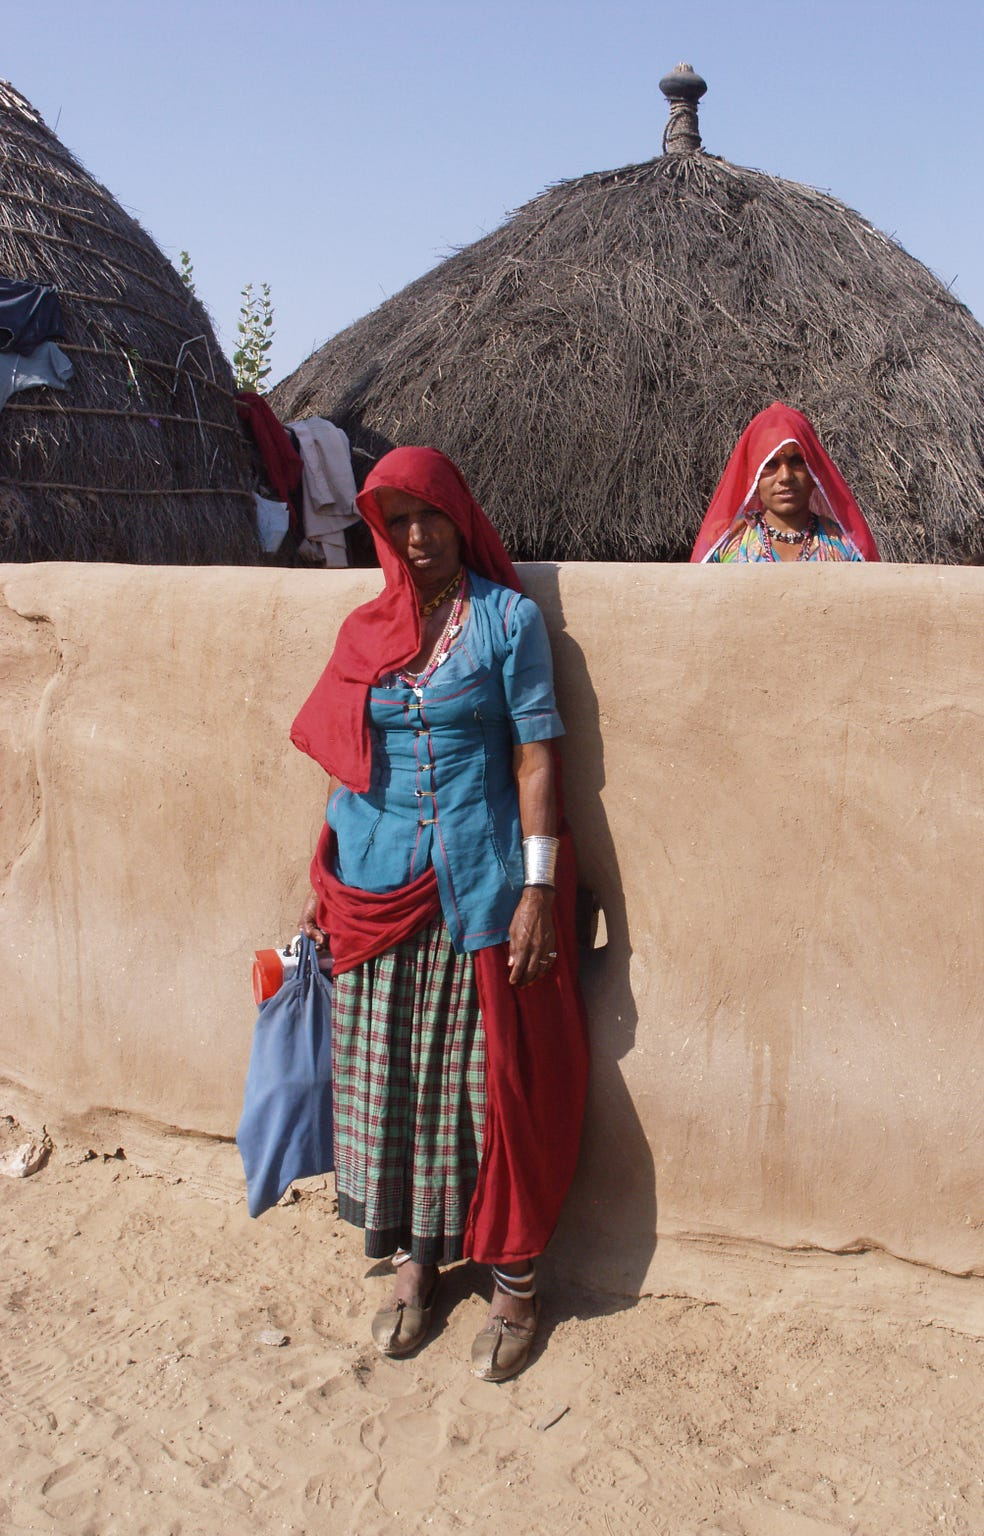 Thatched roofs and adobe walls in India's Thar Desert